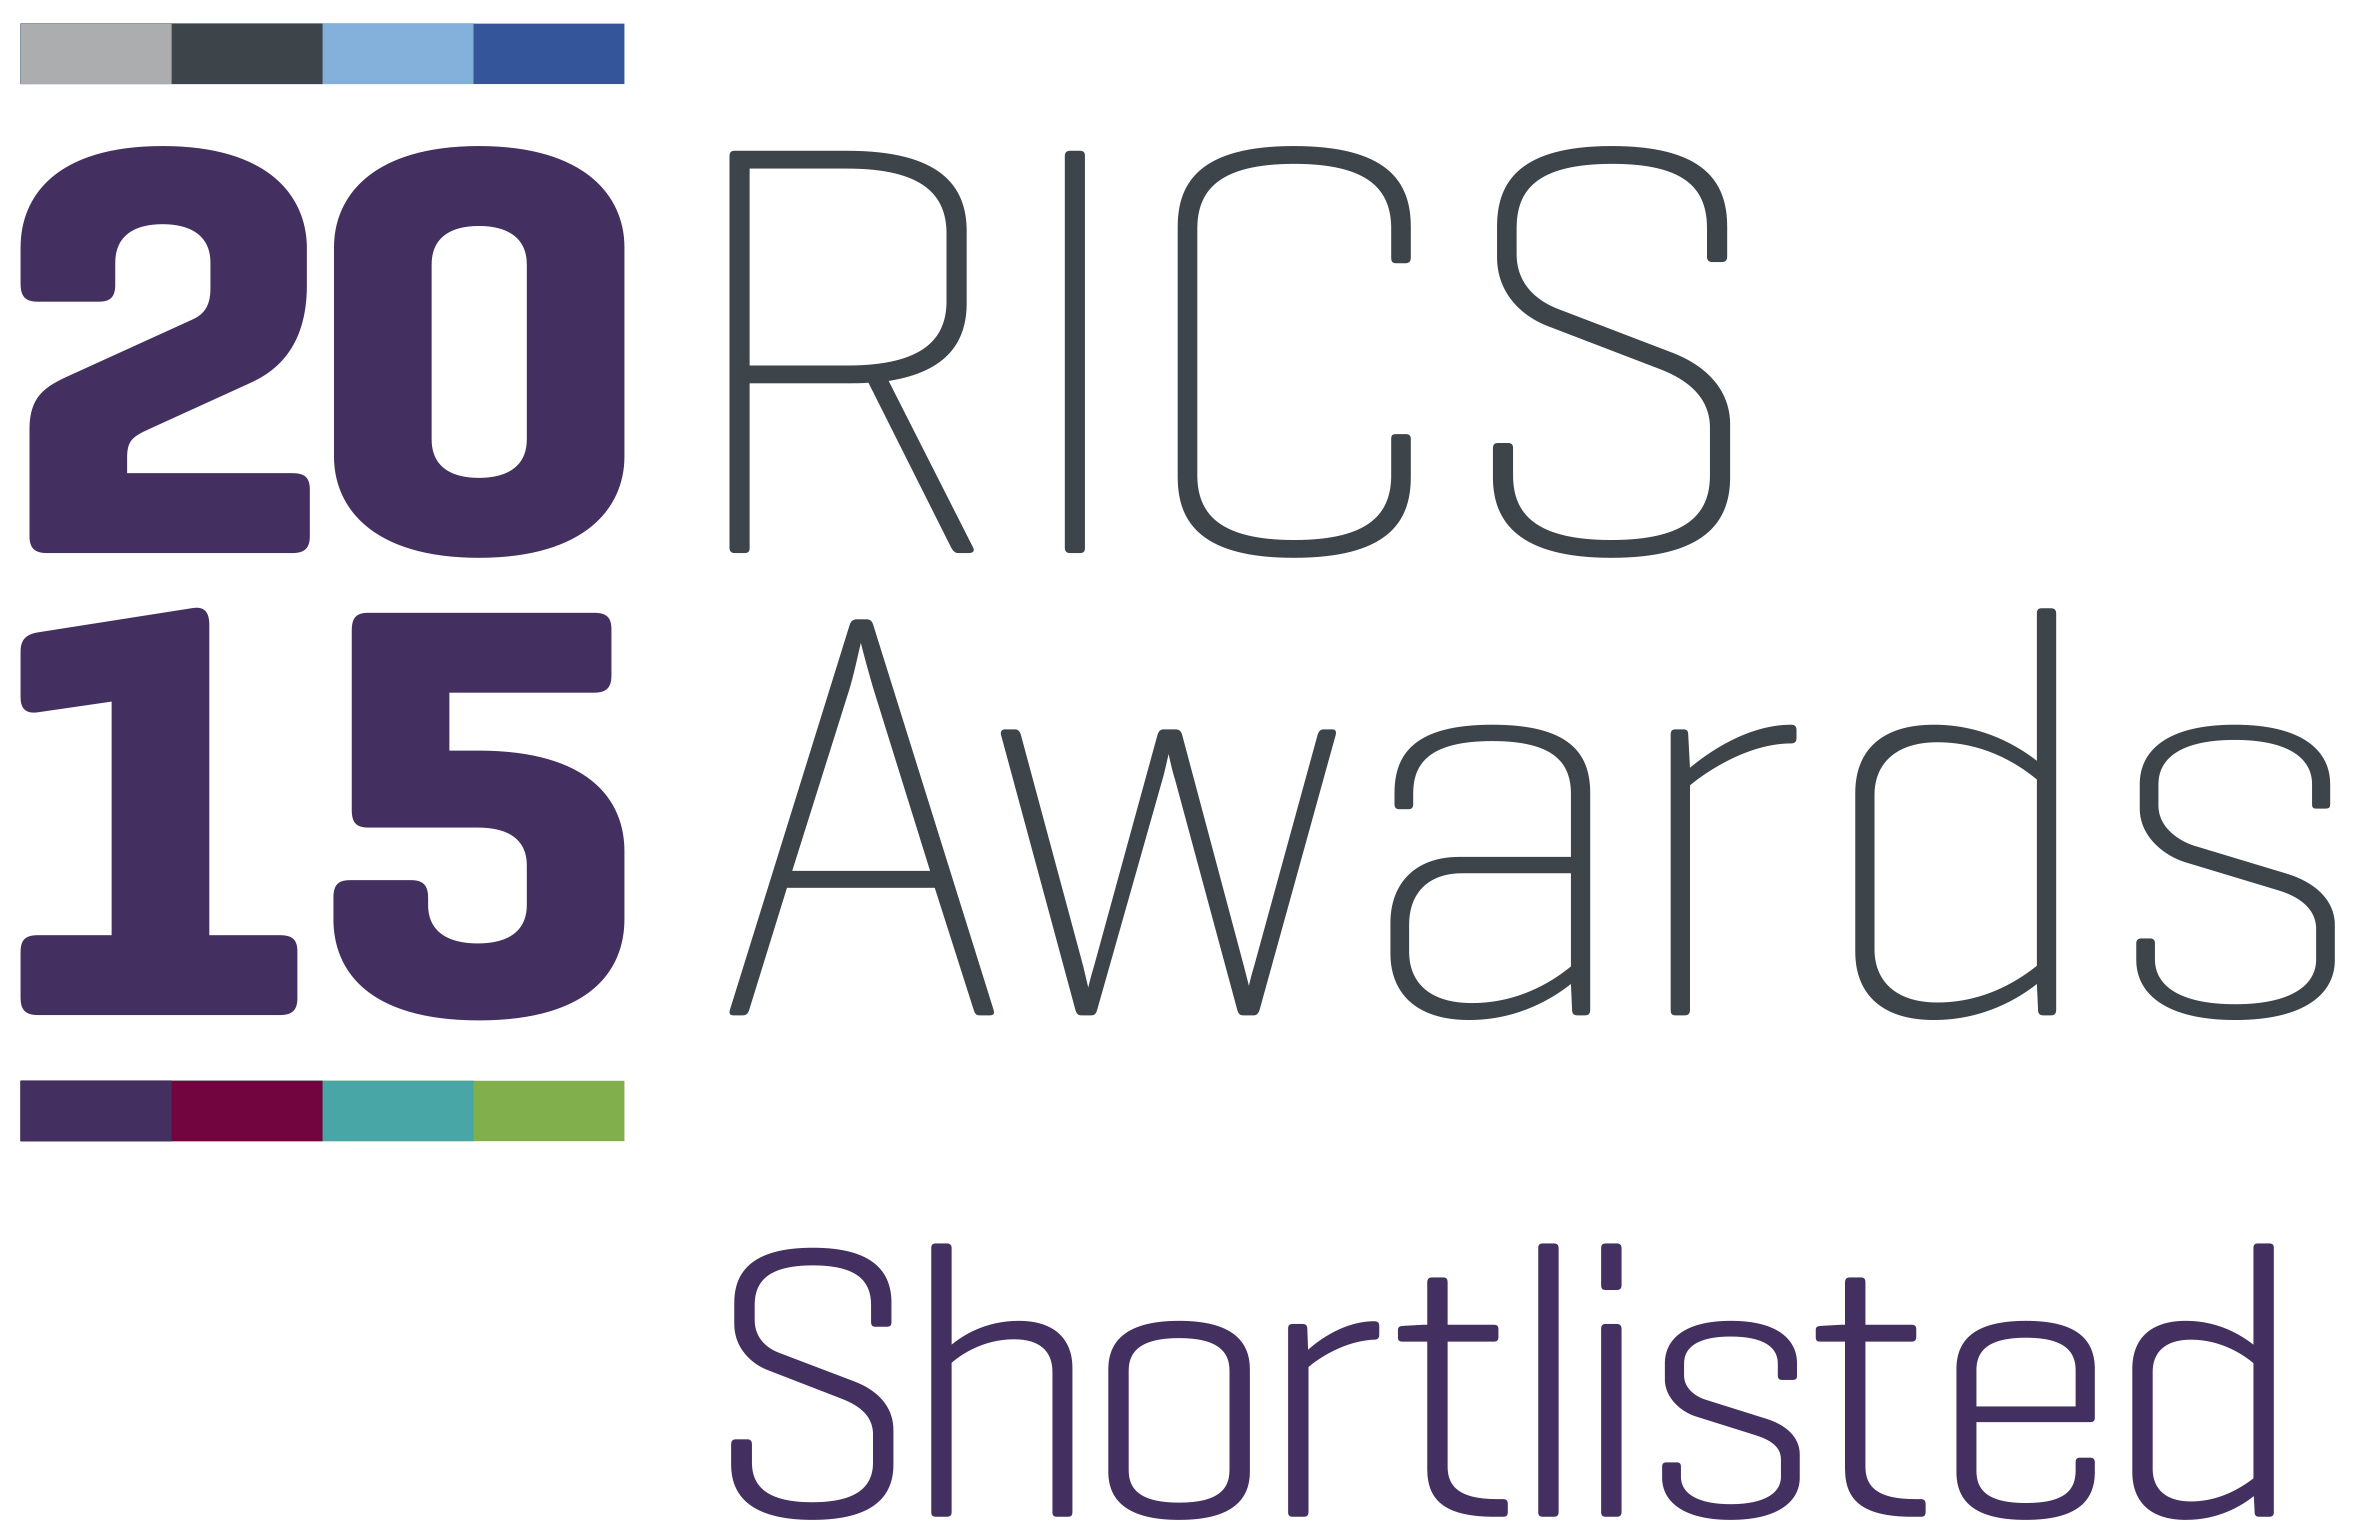 Earlham Hall Shortlisted for RICS East of England Awards 2015